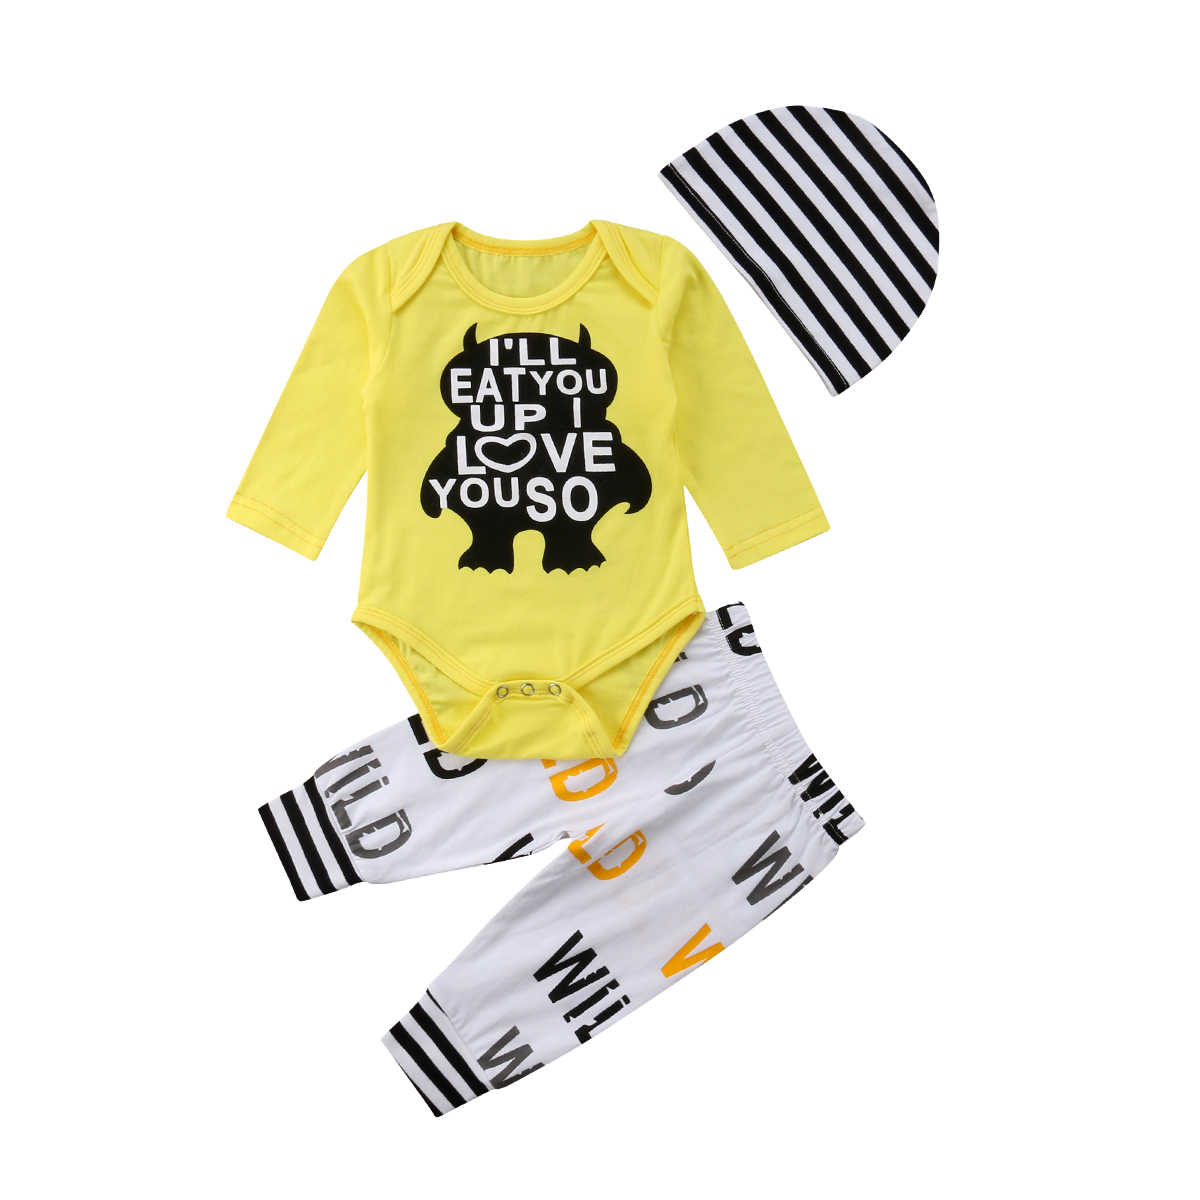 7415924c6 3pcs Newborn Infant Baby Boys Girls Clothing Set Yellow Long Sleeves  Rompers Bodysuits+Pants +